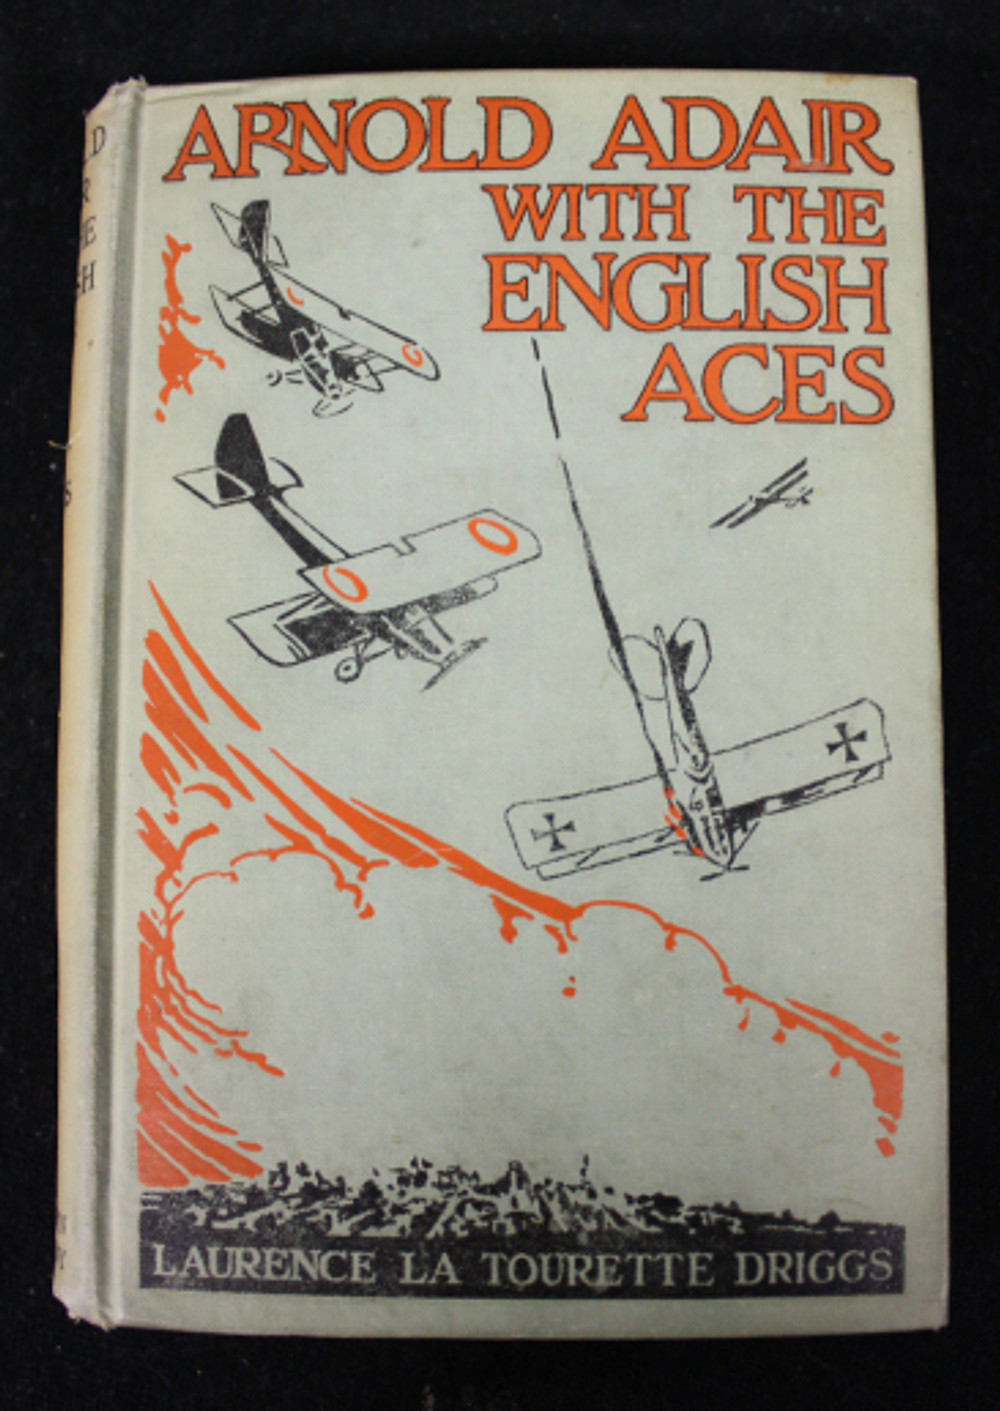 The cover of one of Driggs' novels featuring Arnold Adair.